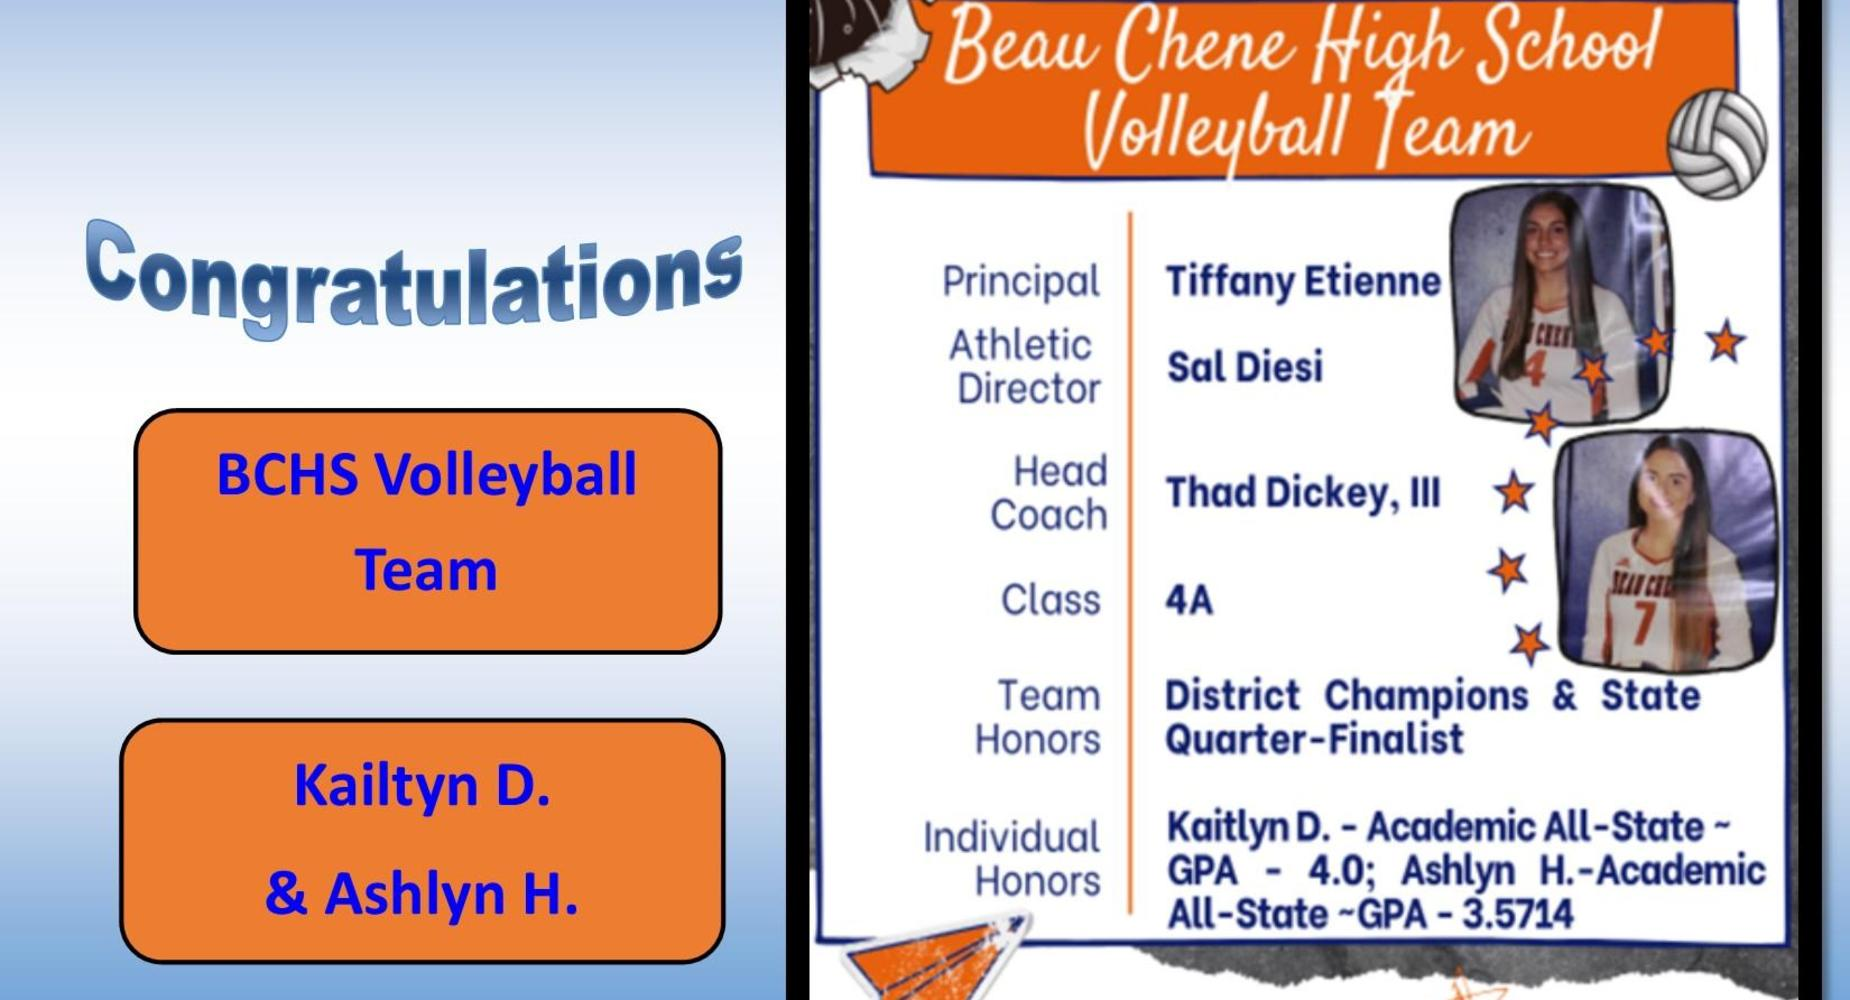 BCHS Volleyball Team - All District & All State: Kaitlyn Dickey & Ashlyn Head